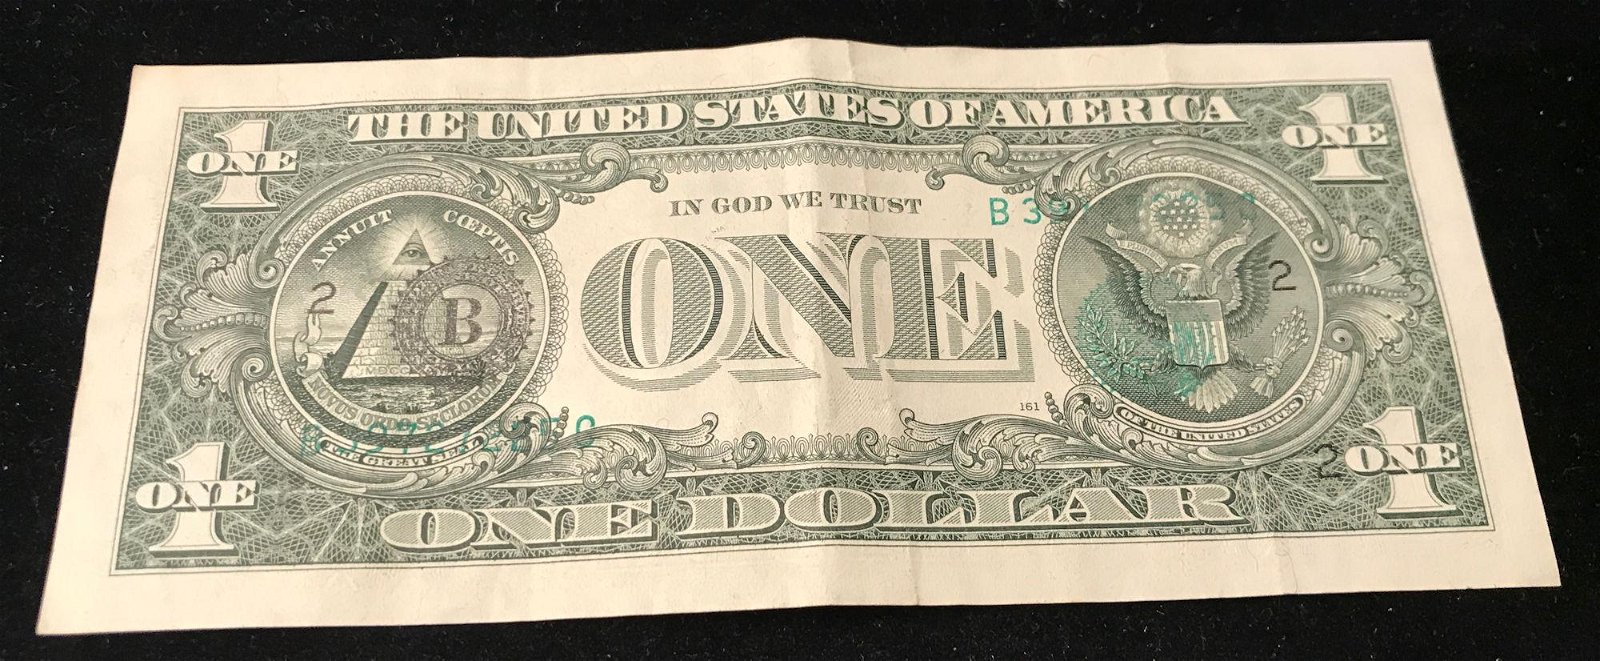 SERIES 1985 ONE DOLLAR FEDERAL RESERVE ERROR NOTE